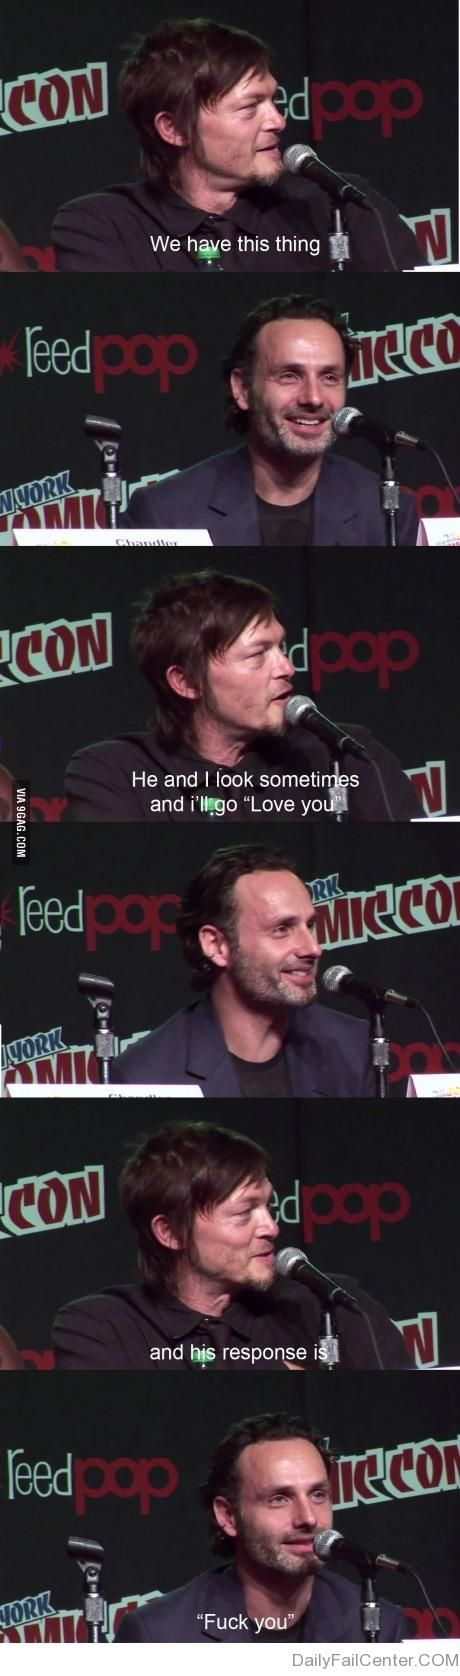 """Two of the sexiest men on TV!  Can't pick a team - they are """"the team"""" - and with Michonne - they rock the new zombie world!"""